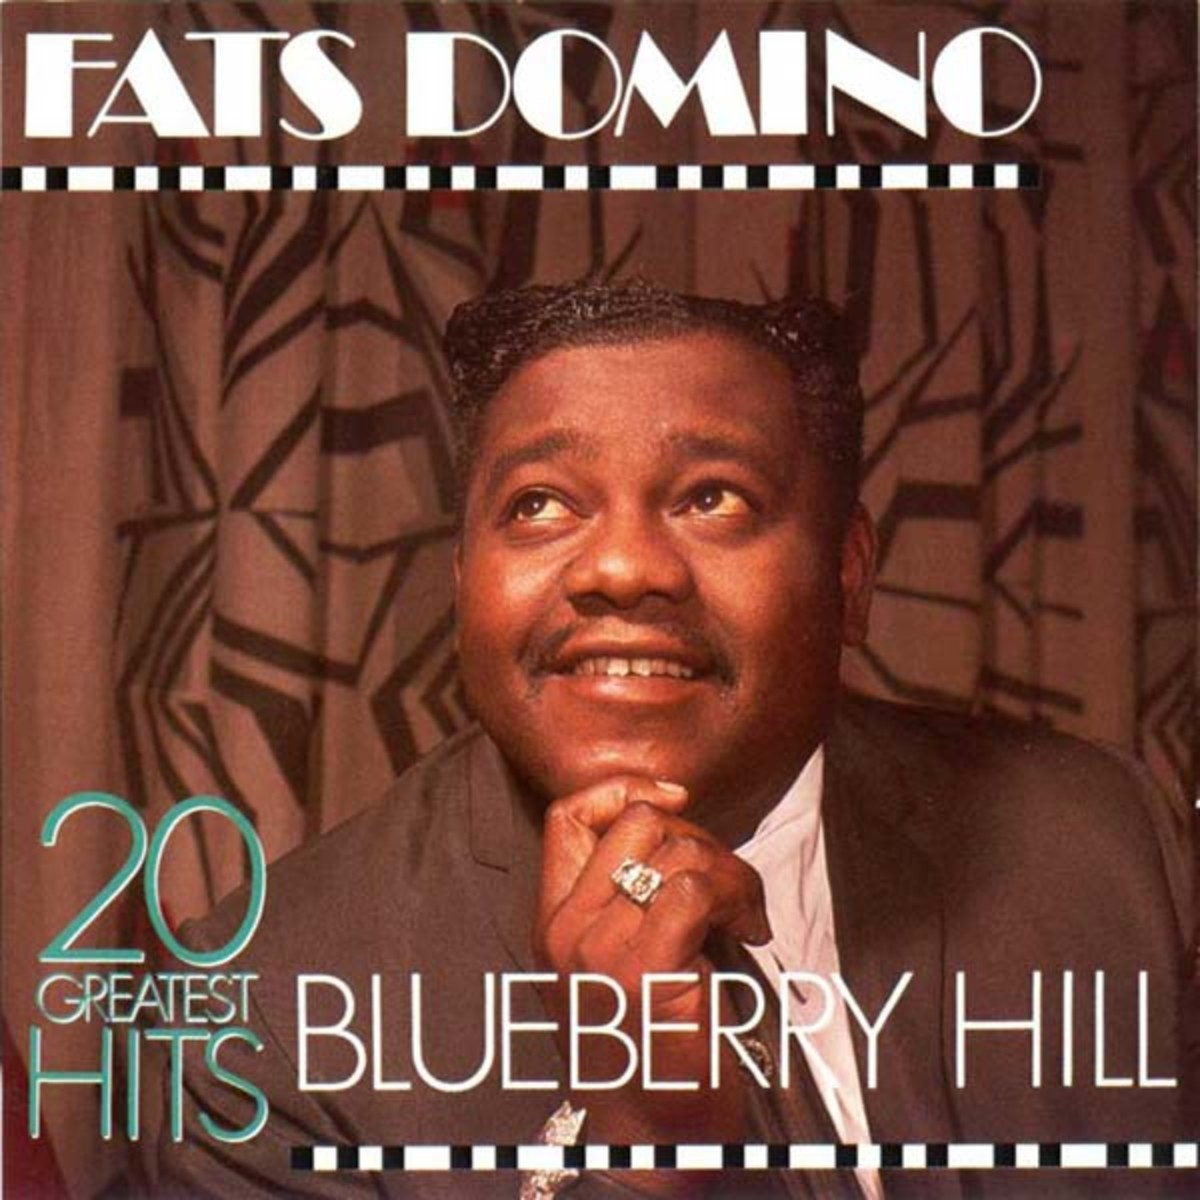 Fats Domino- Blueberry Hill